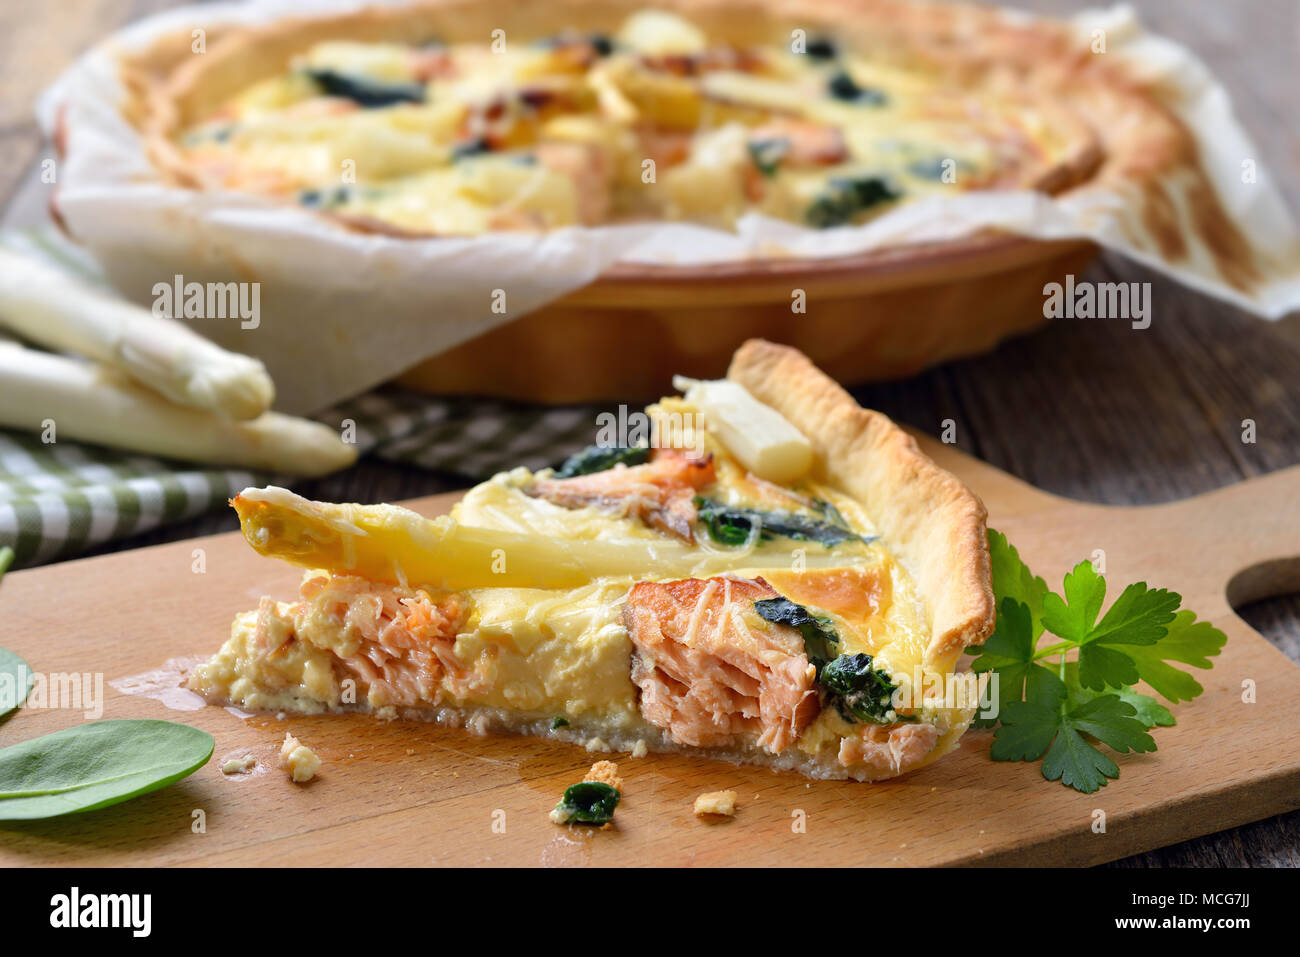 Baked quiche with fresh white asparagus, smoked salmon and spinach - Stock Image